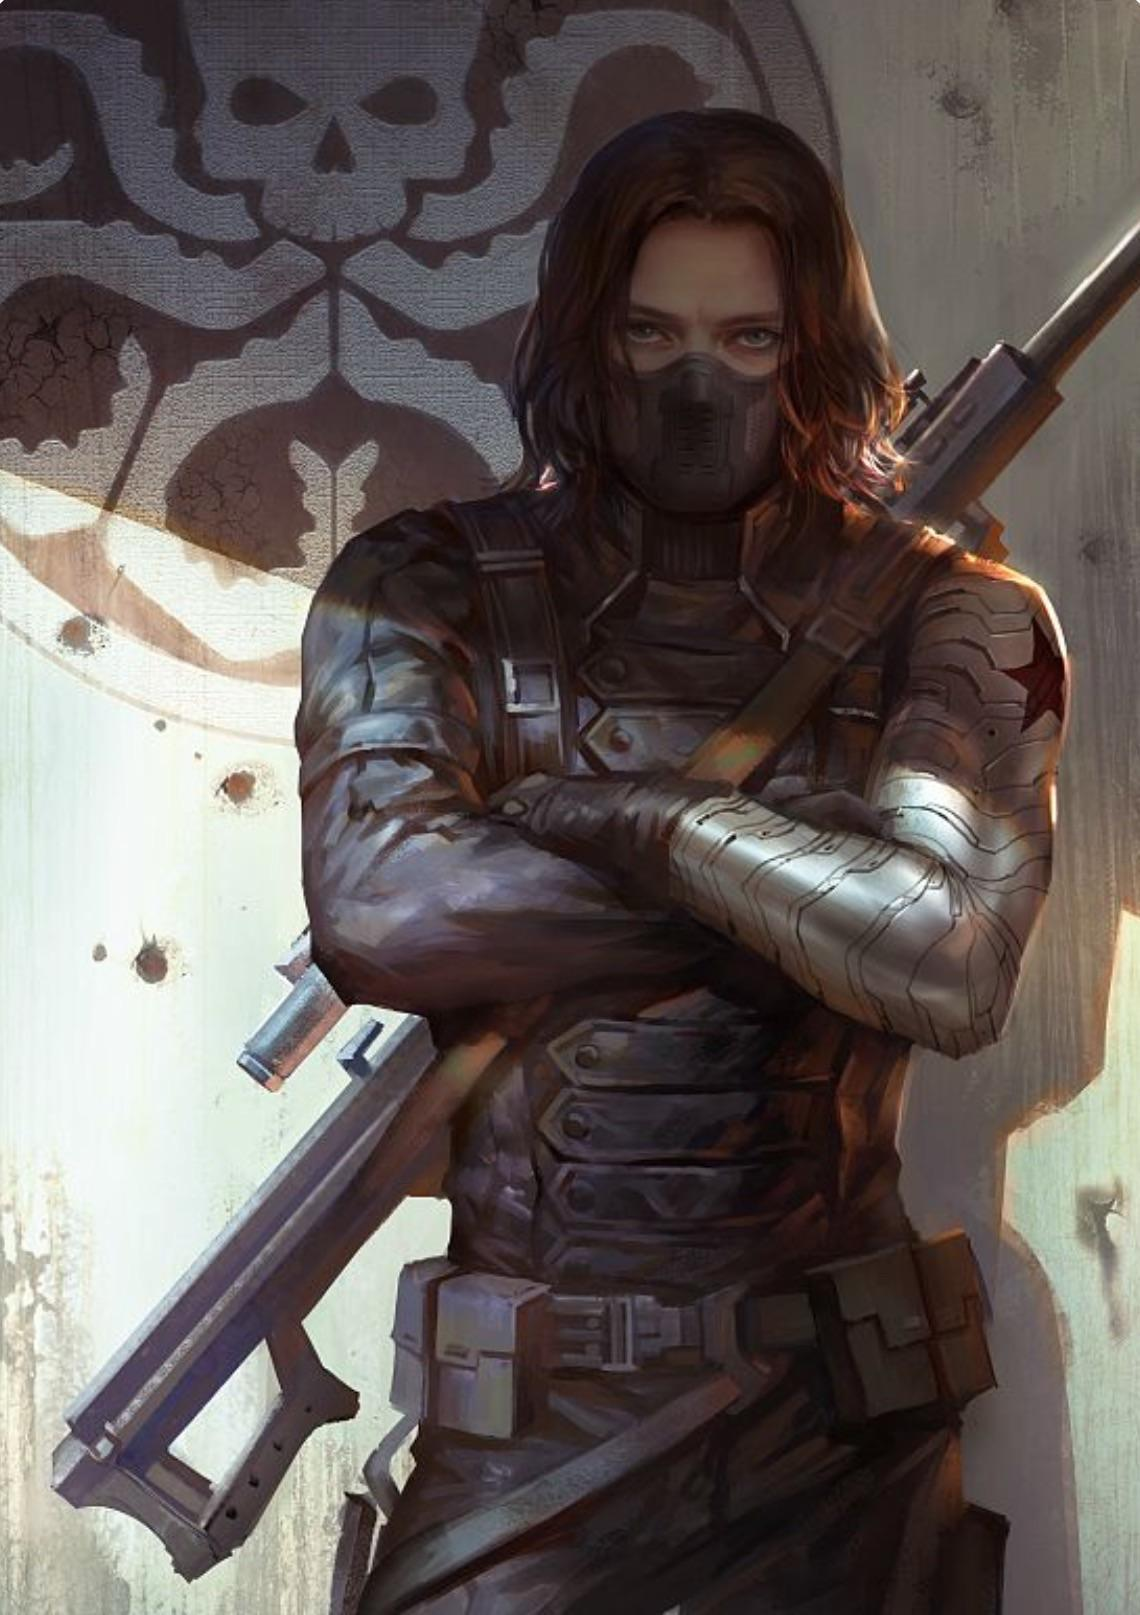 Do you think Bucky Barnes is a villain?